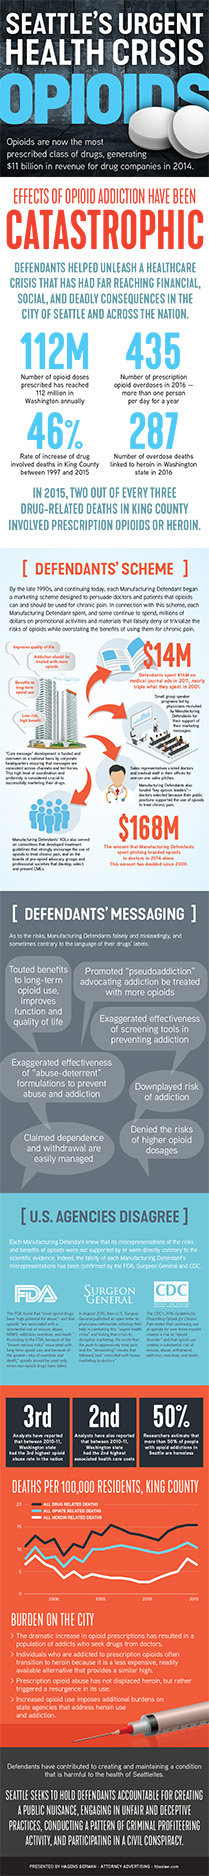 Seattle Opioids Litigation Infographic